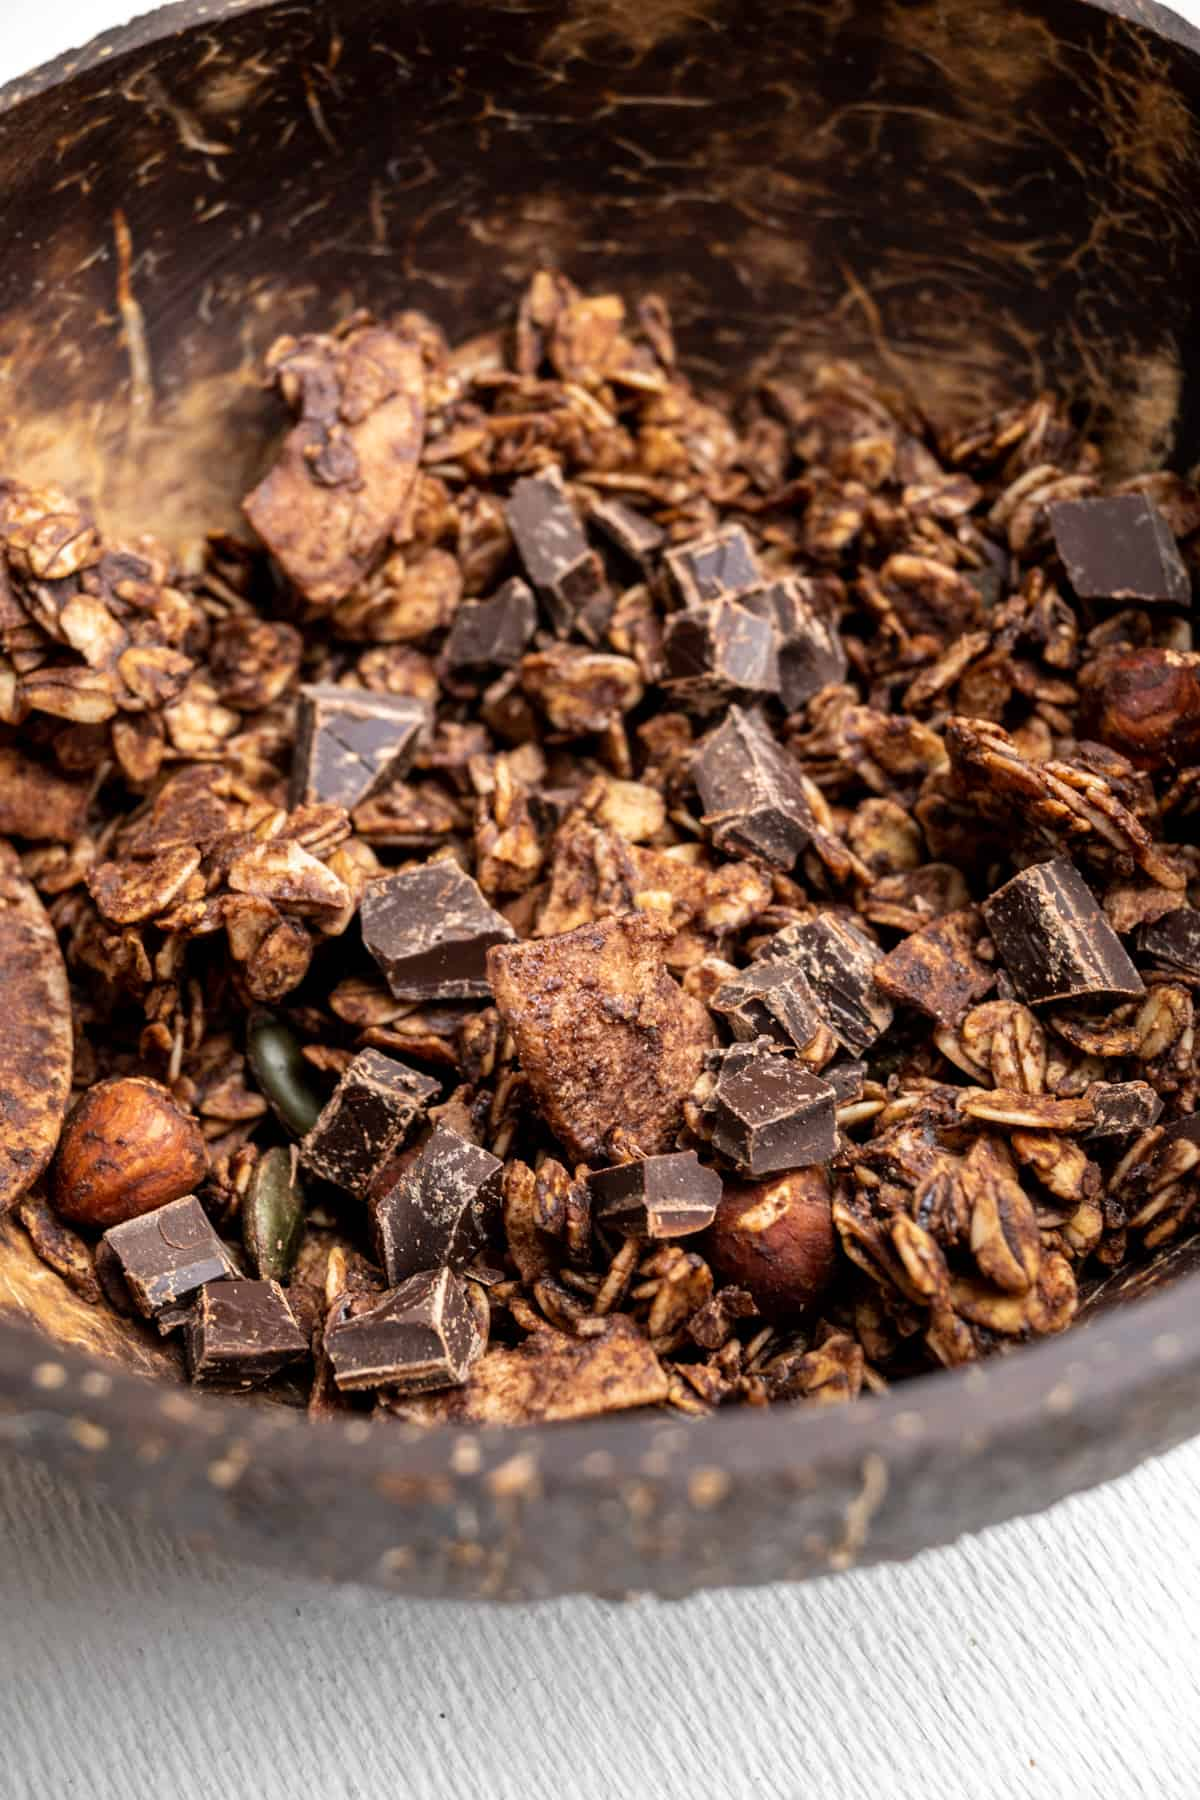 Granola with cocoa powder and chocolate as a tasty variation of this recipe.